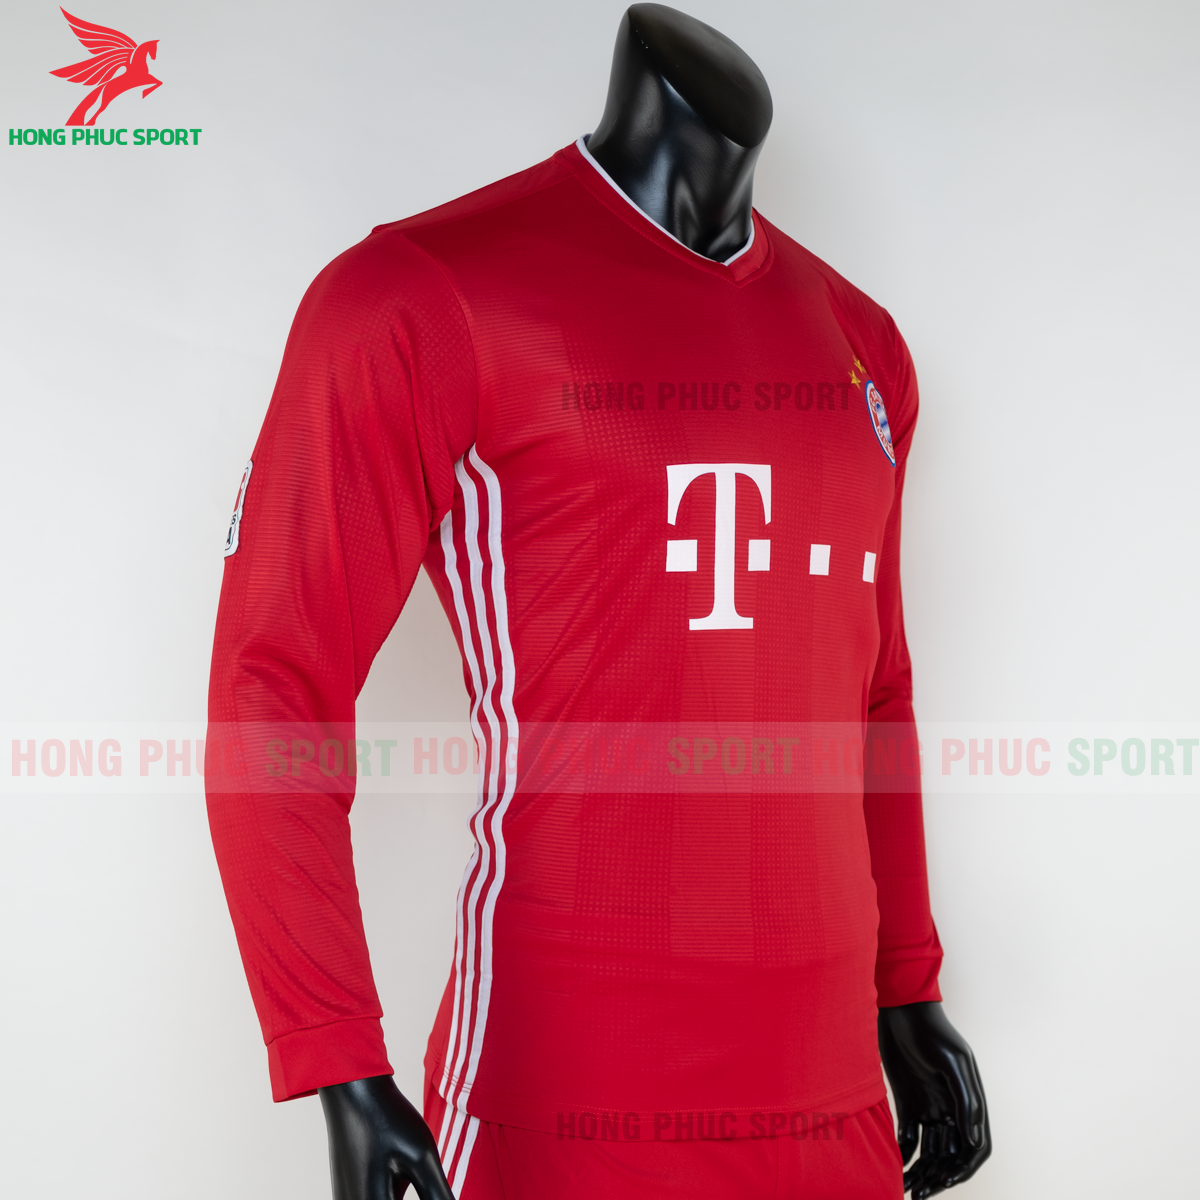 https://cdn.hongphucsport.com/unsafe/s4.shopbay.vn/files/285/ao-dai-tay-bayern-munich-2020-san-nha-5-5f8fba05941c5.png